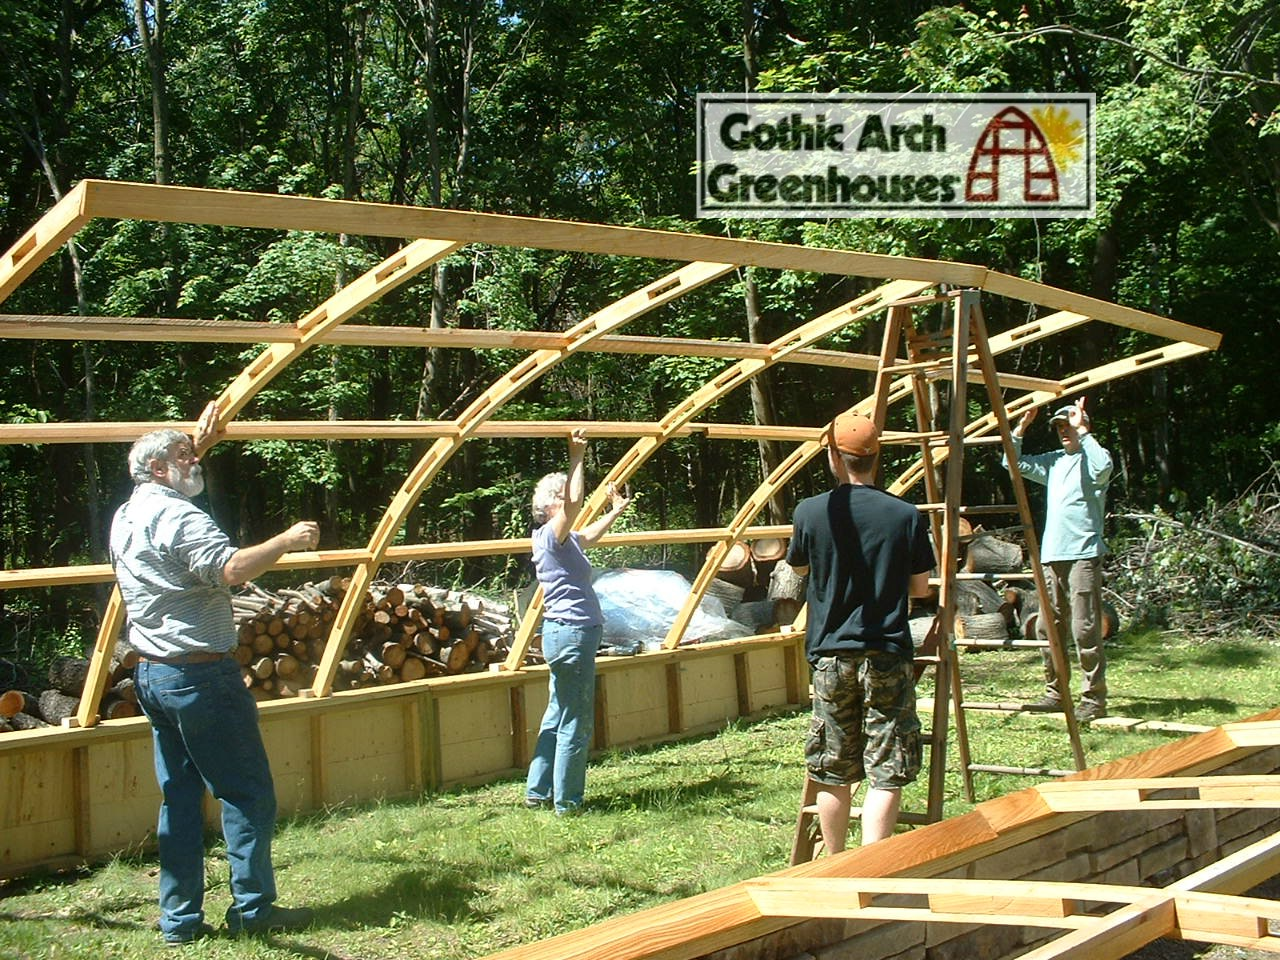 Gothic arch greenhouse easy to assemble simple design for Gothic arch greenhouse plans